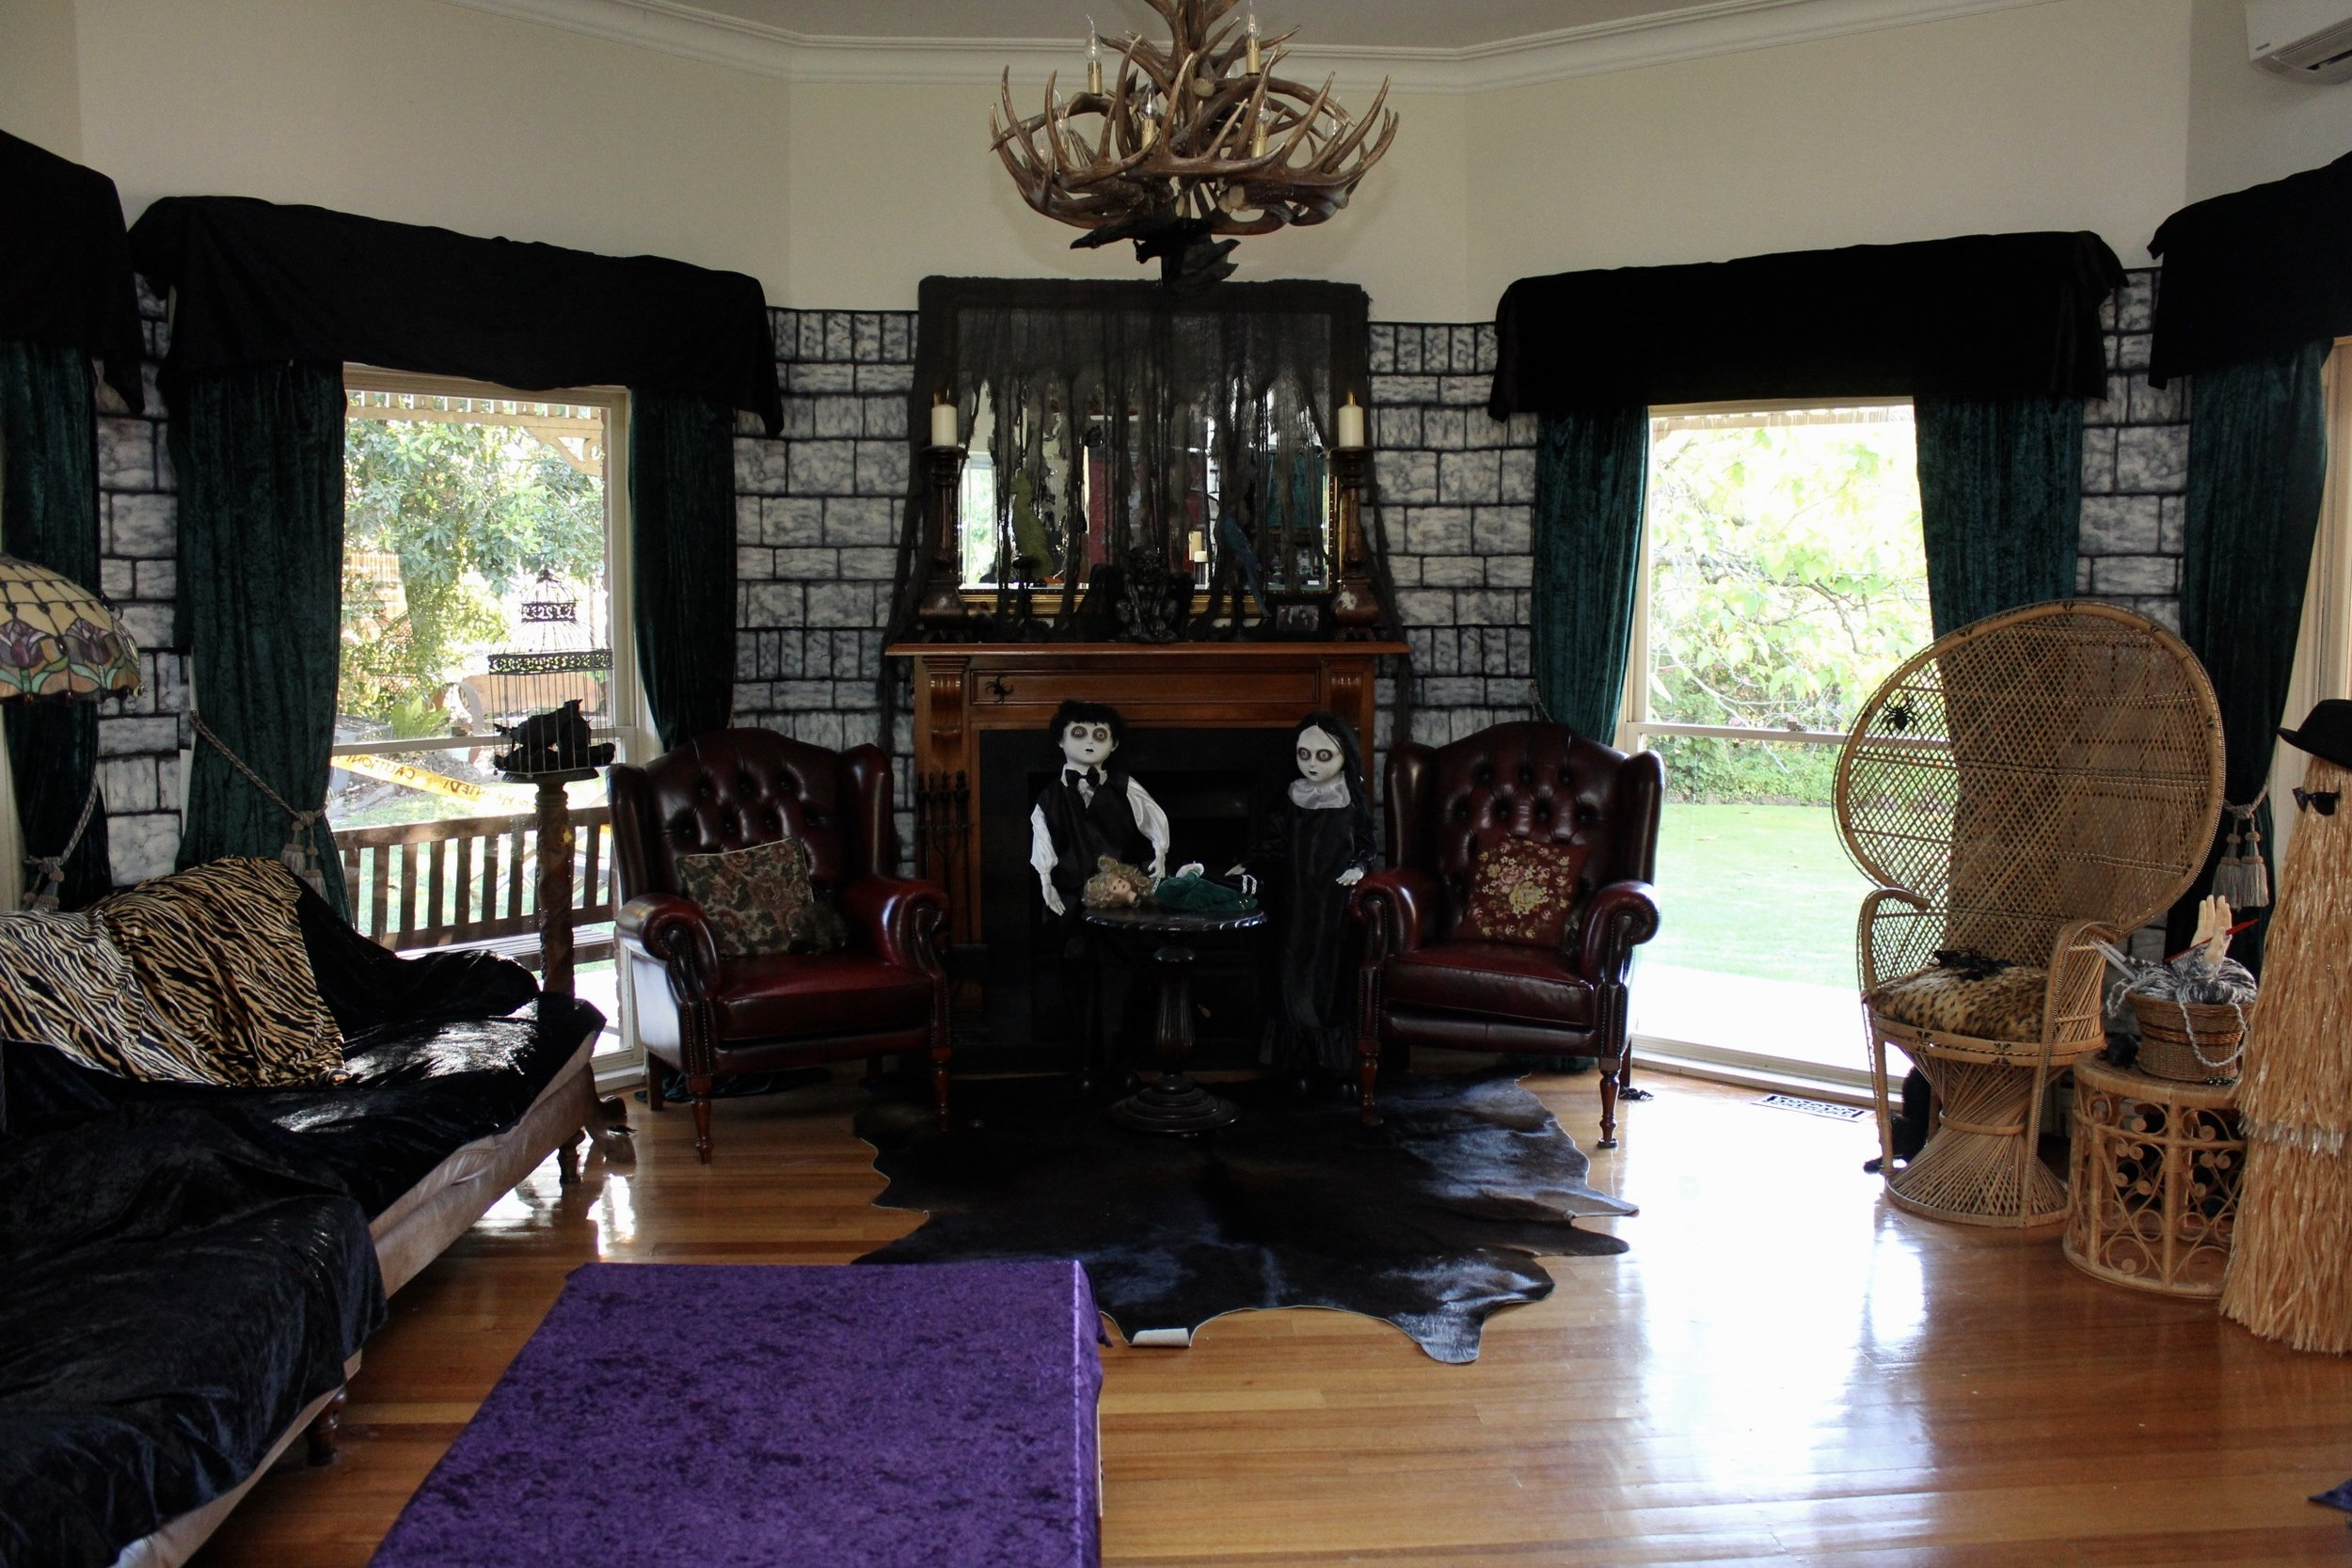 The Addams Family Decorating Ideas, Use vintage furniture and cow hides to transform your room.